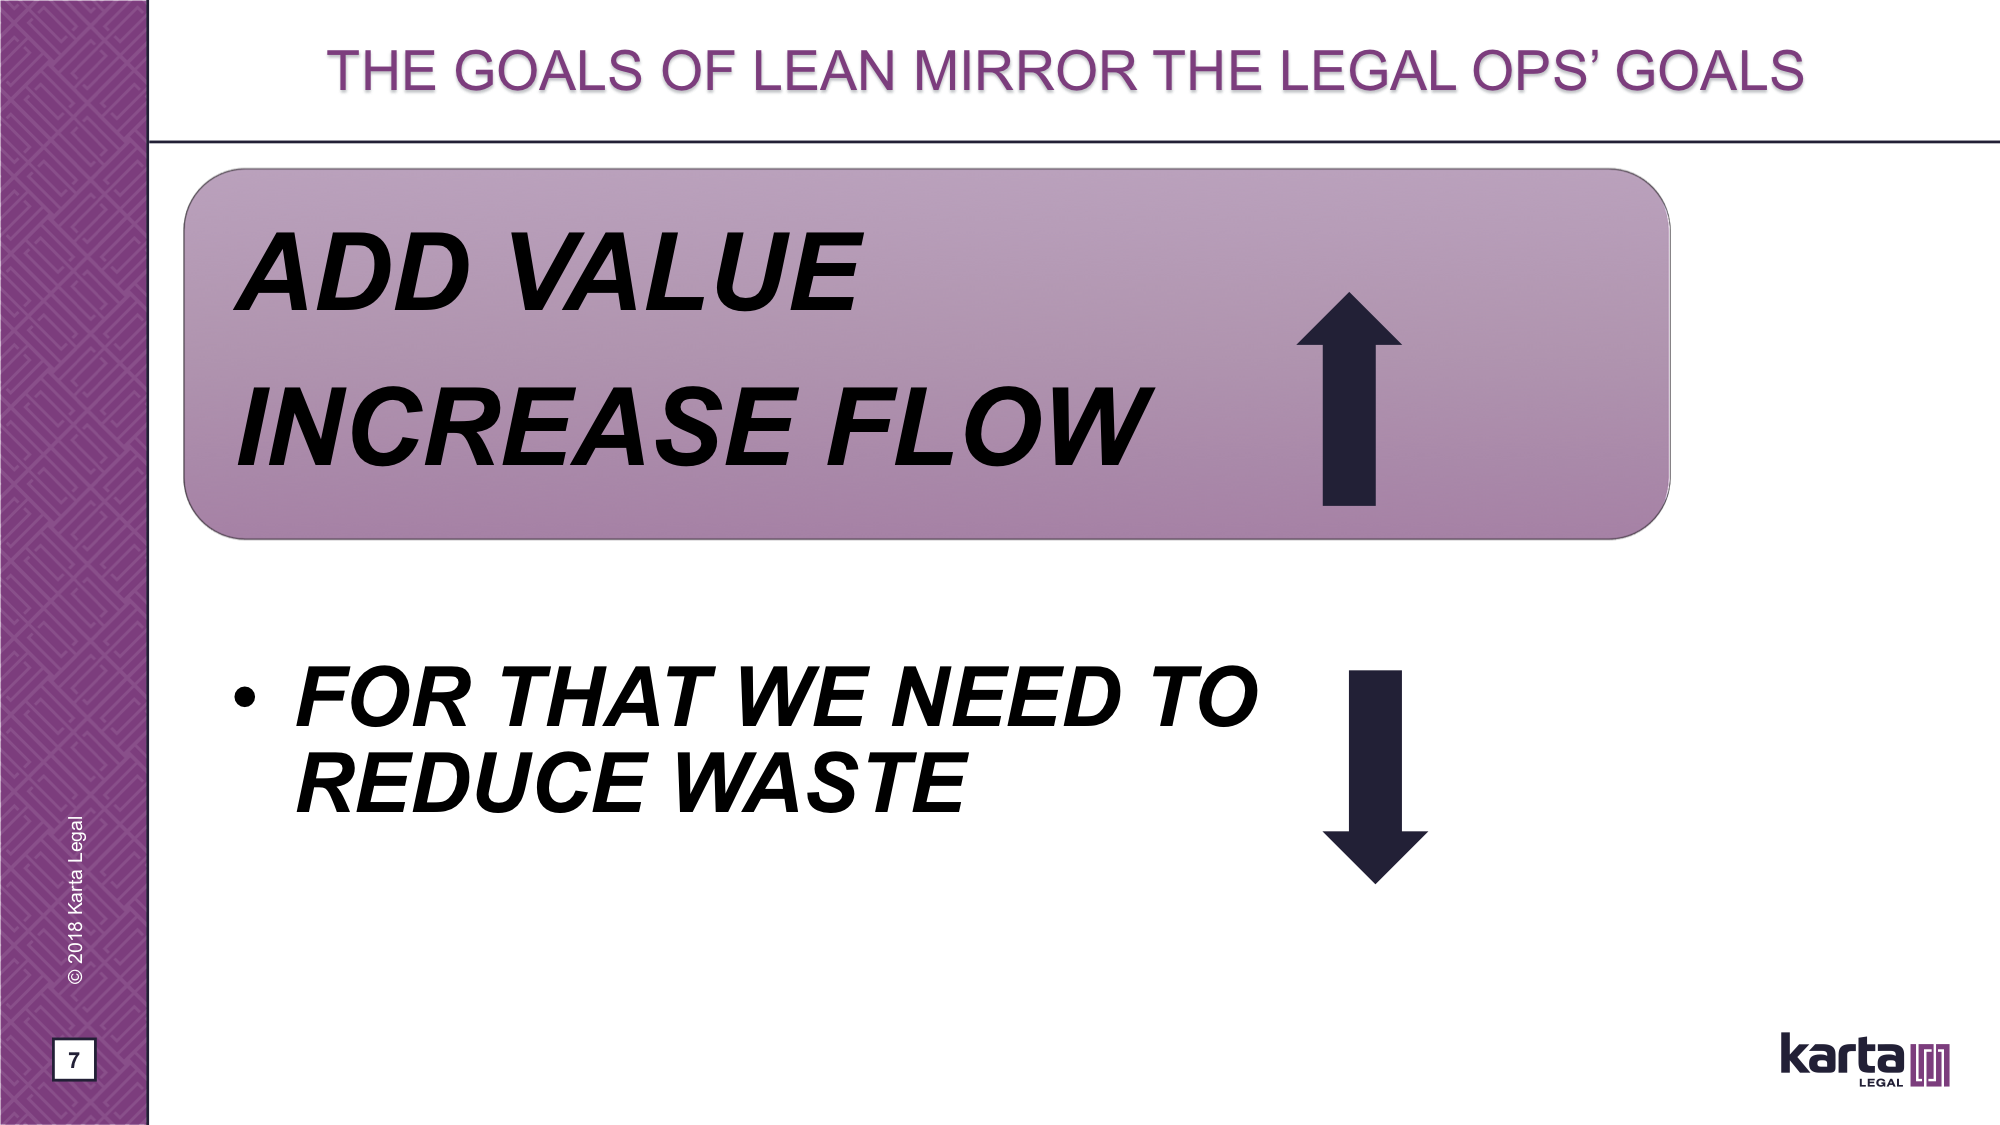 The goals of lean mirror the legal ops' goals